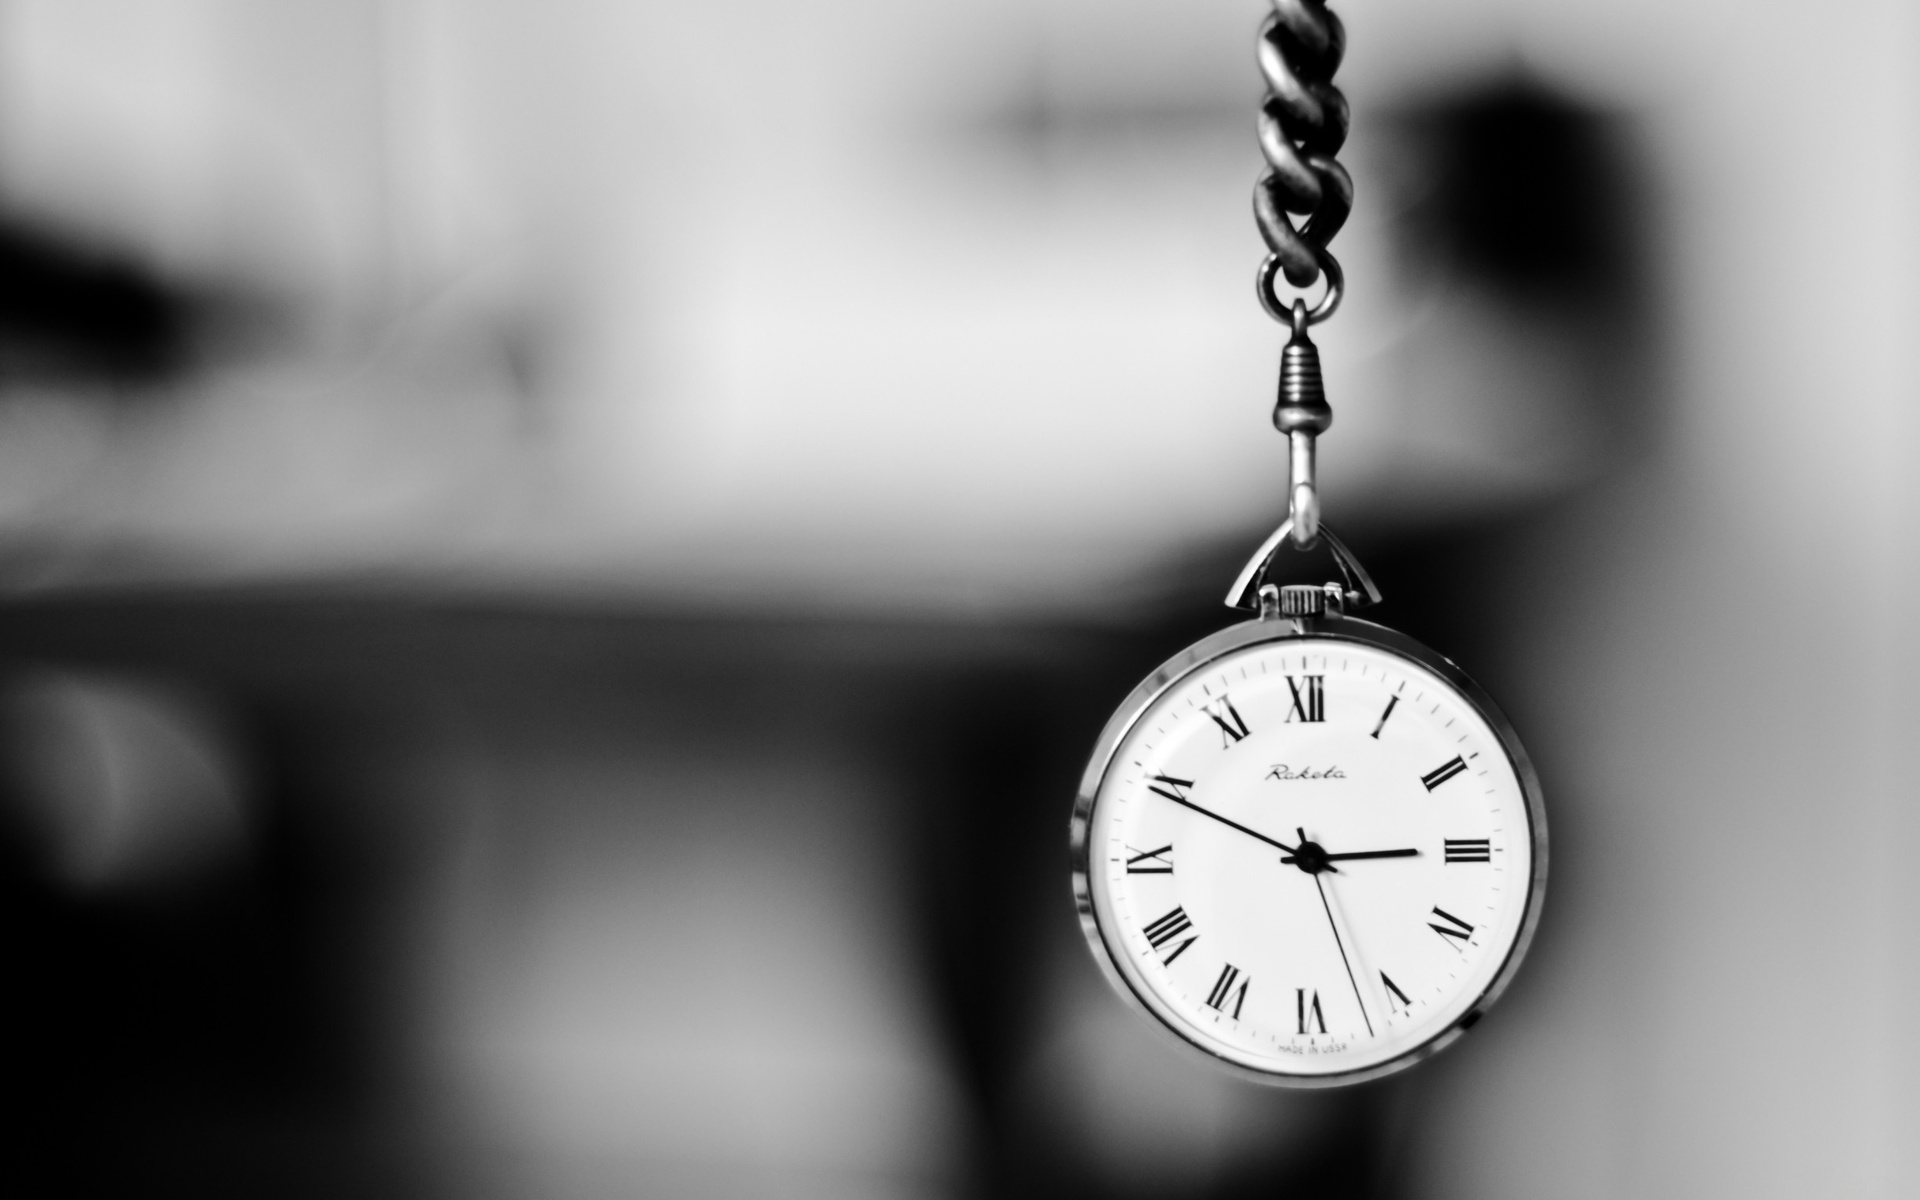 Pocket watch wallpaper  Pocket Watch Wallpaper HD 45054 1920x1200 px ~ HDWallSource.com